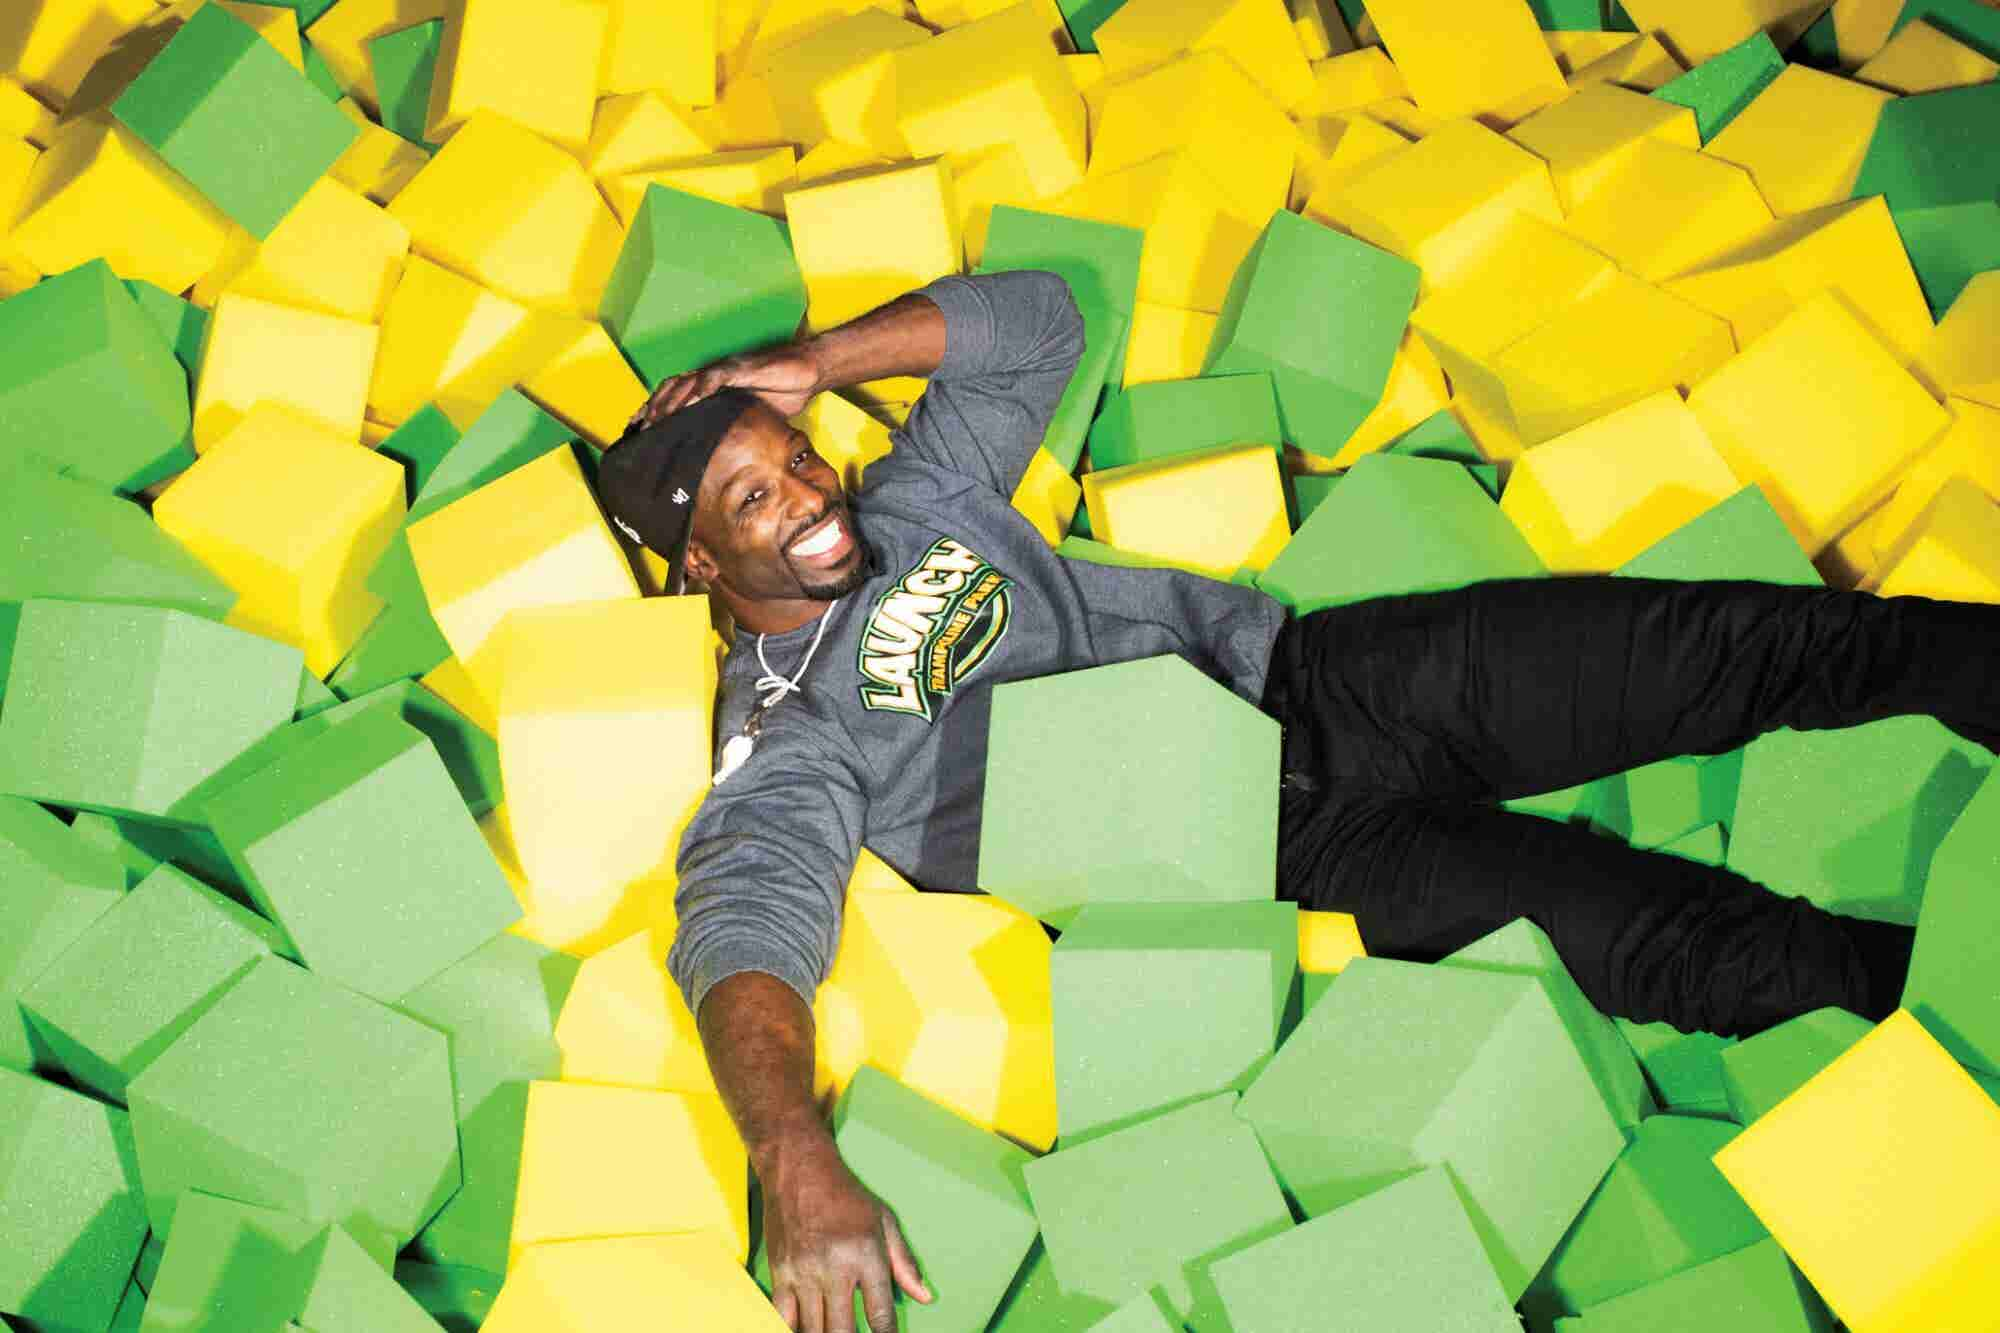 Former NFL Star Jason Avant Has a New Career -- In Trampoline Parks